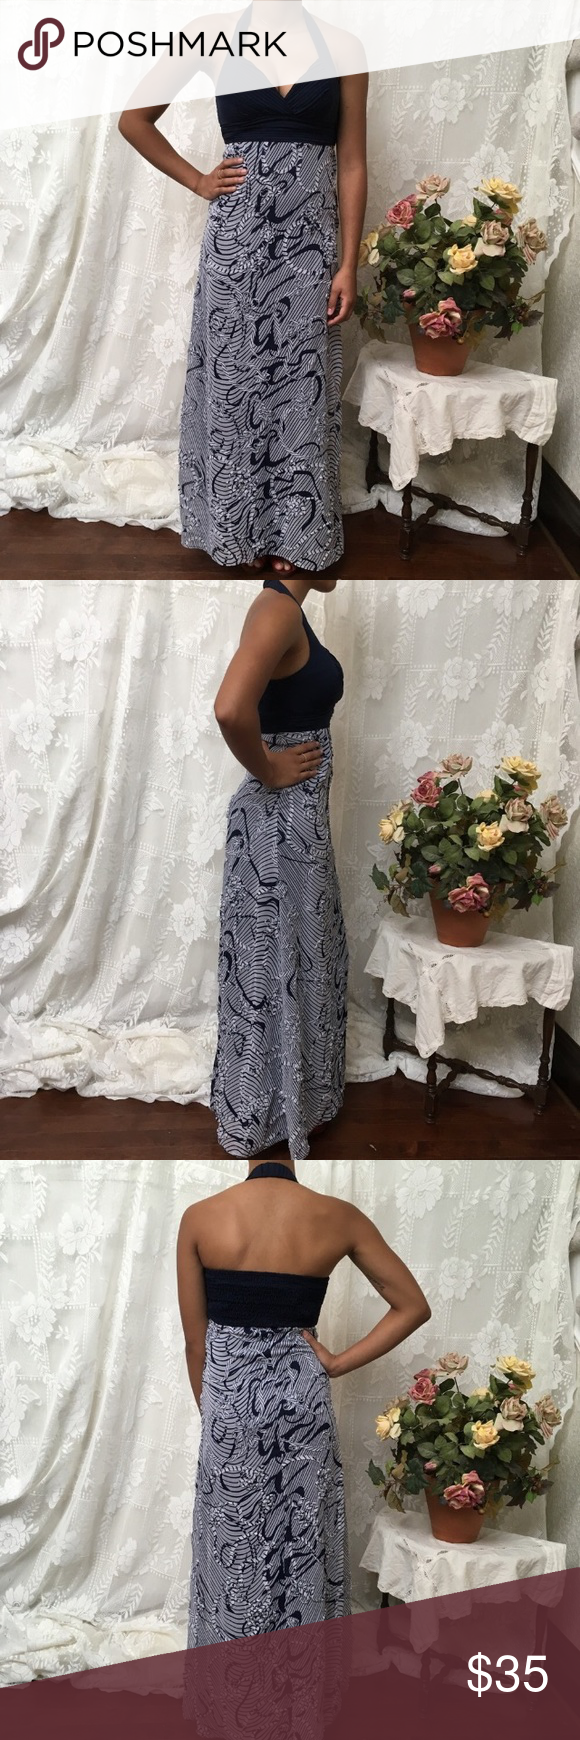 Sew in cups for wedding dress  XOXO Embellished Navy and White Maxi Halter Dress  White maxi